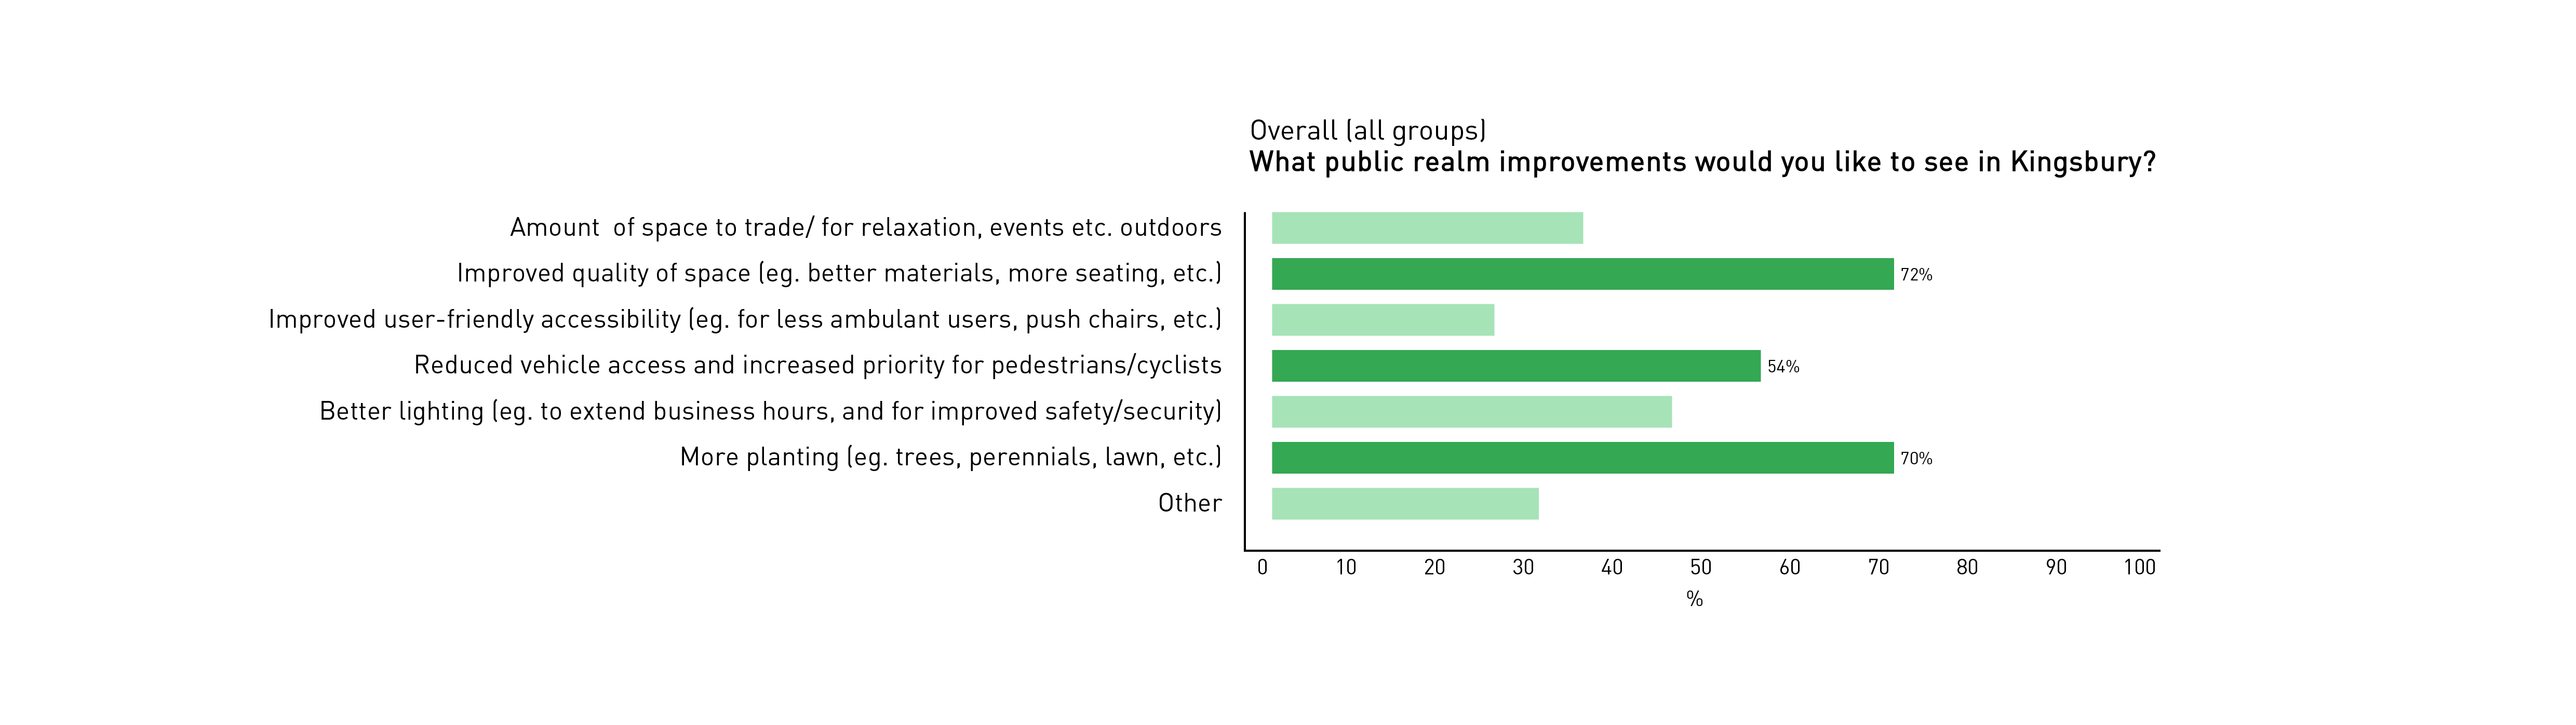 Bar chart showing the public realm improvements people would like to see in Kingsbury